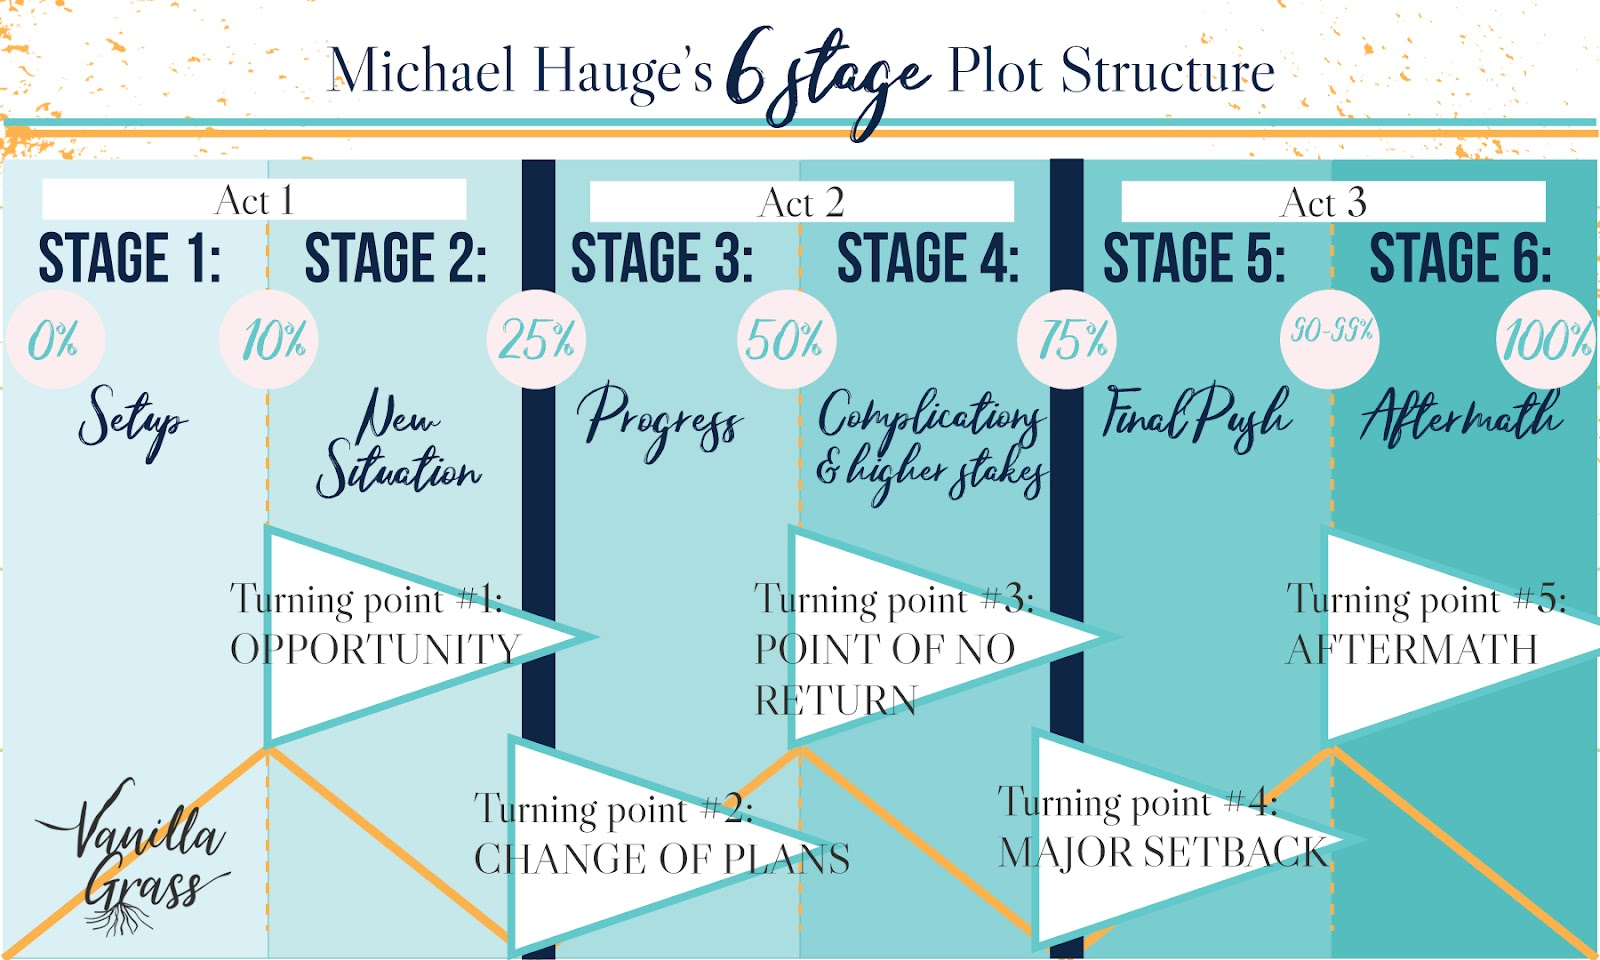 A graph of Michael Hauge's 6-Stage story plot structure with it's stages and turning points.